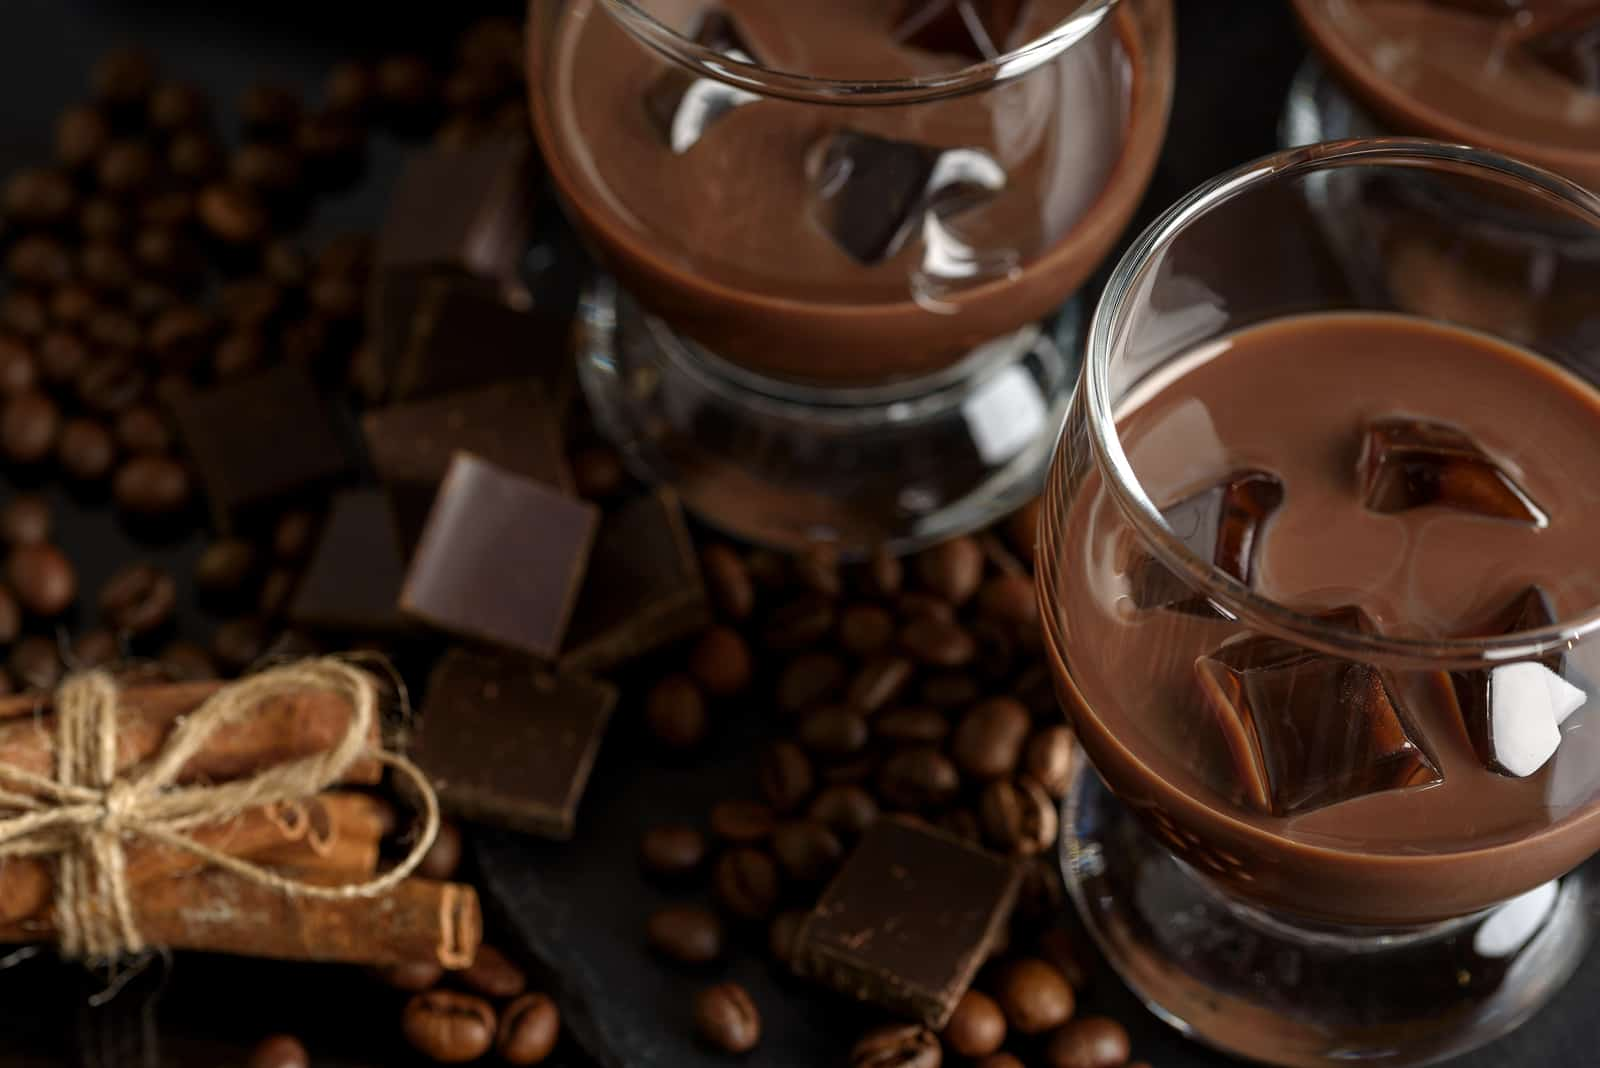 Indulge in These 3 Sweet, Delicious Chocolate Cocktail Recipes